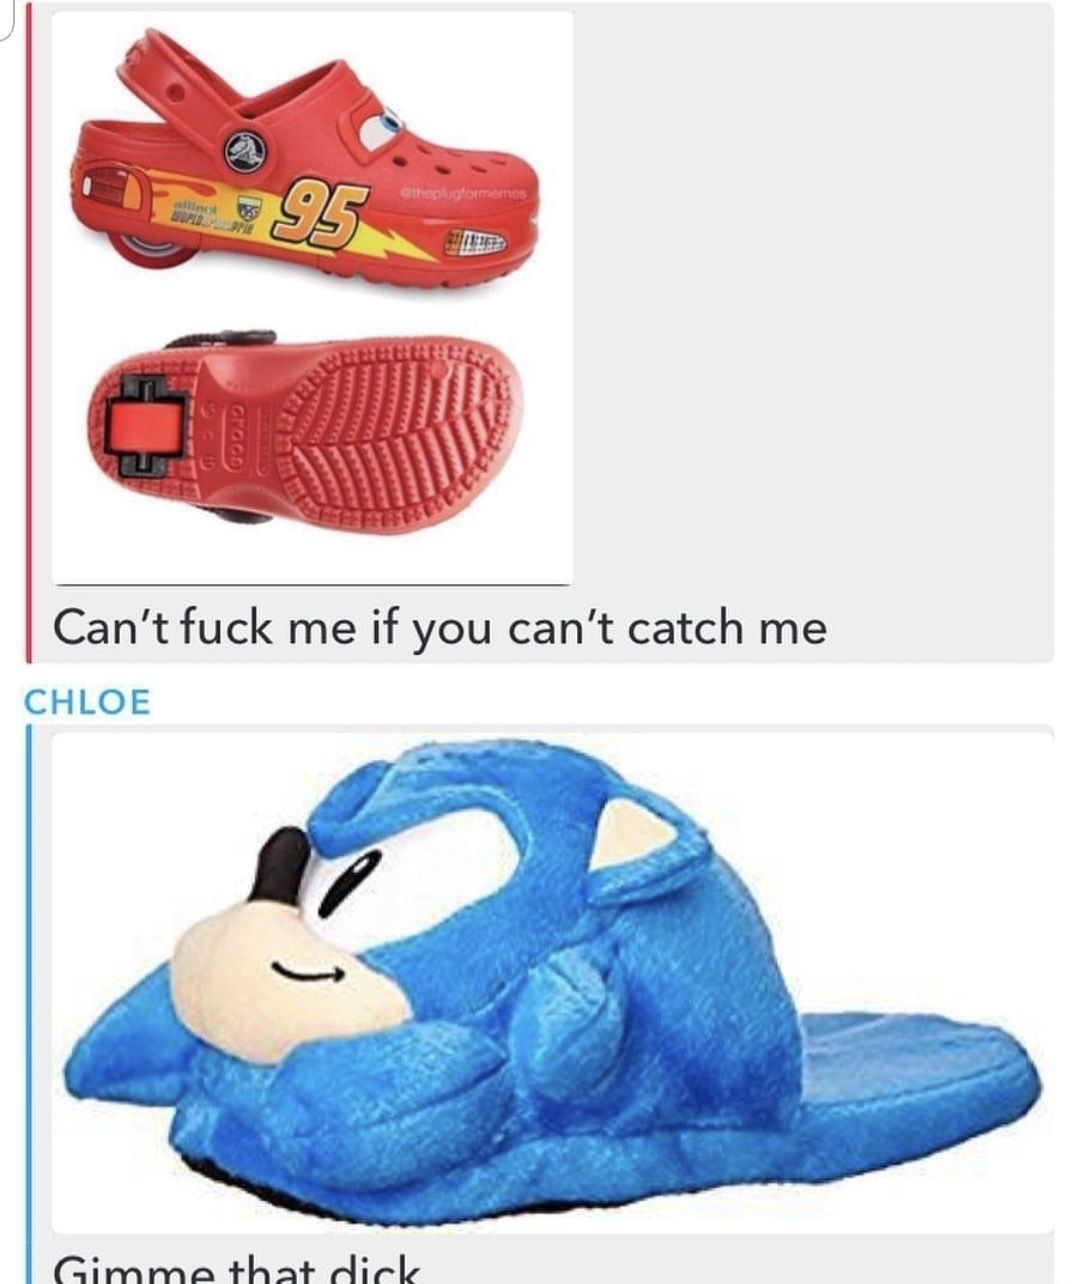 I think lighting McQueen Healy Crocs would win